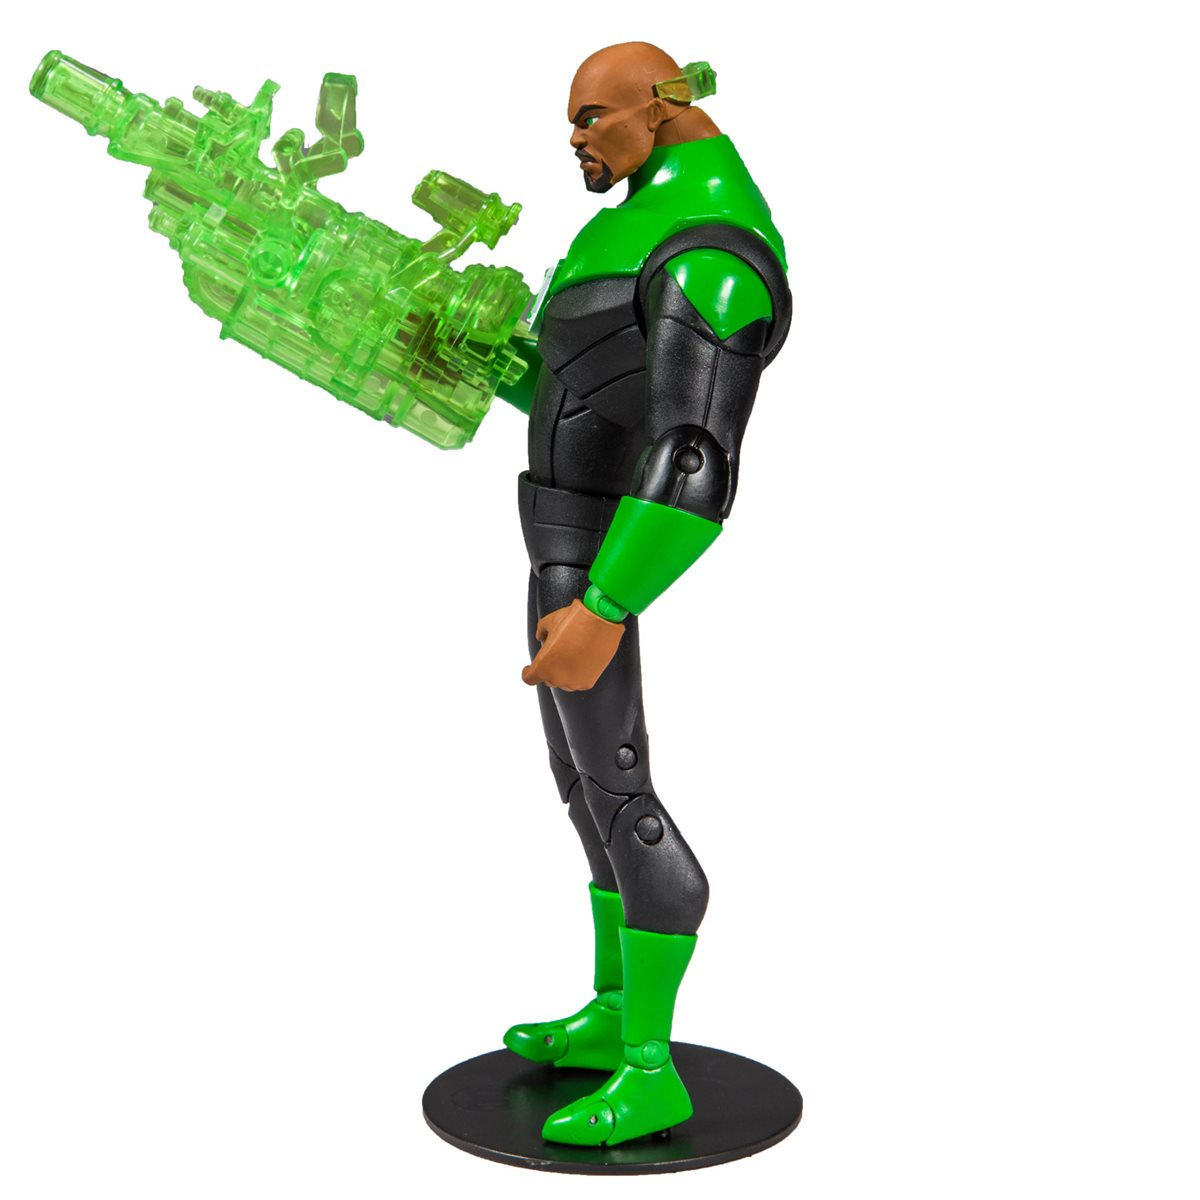 MONOGRAM DC COMICS GREEN LANTERN 4-INCH COLLECTABLE MINI-STATUE